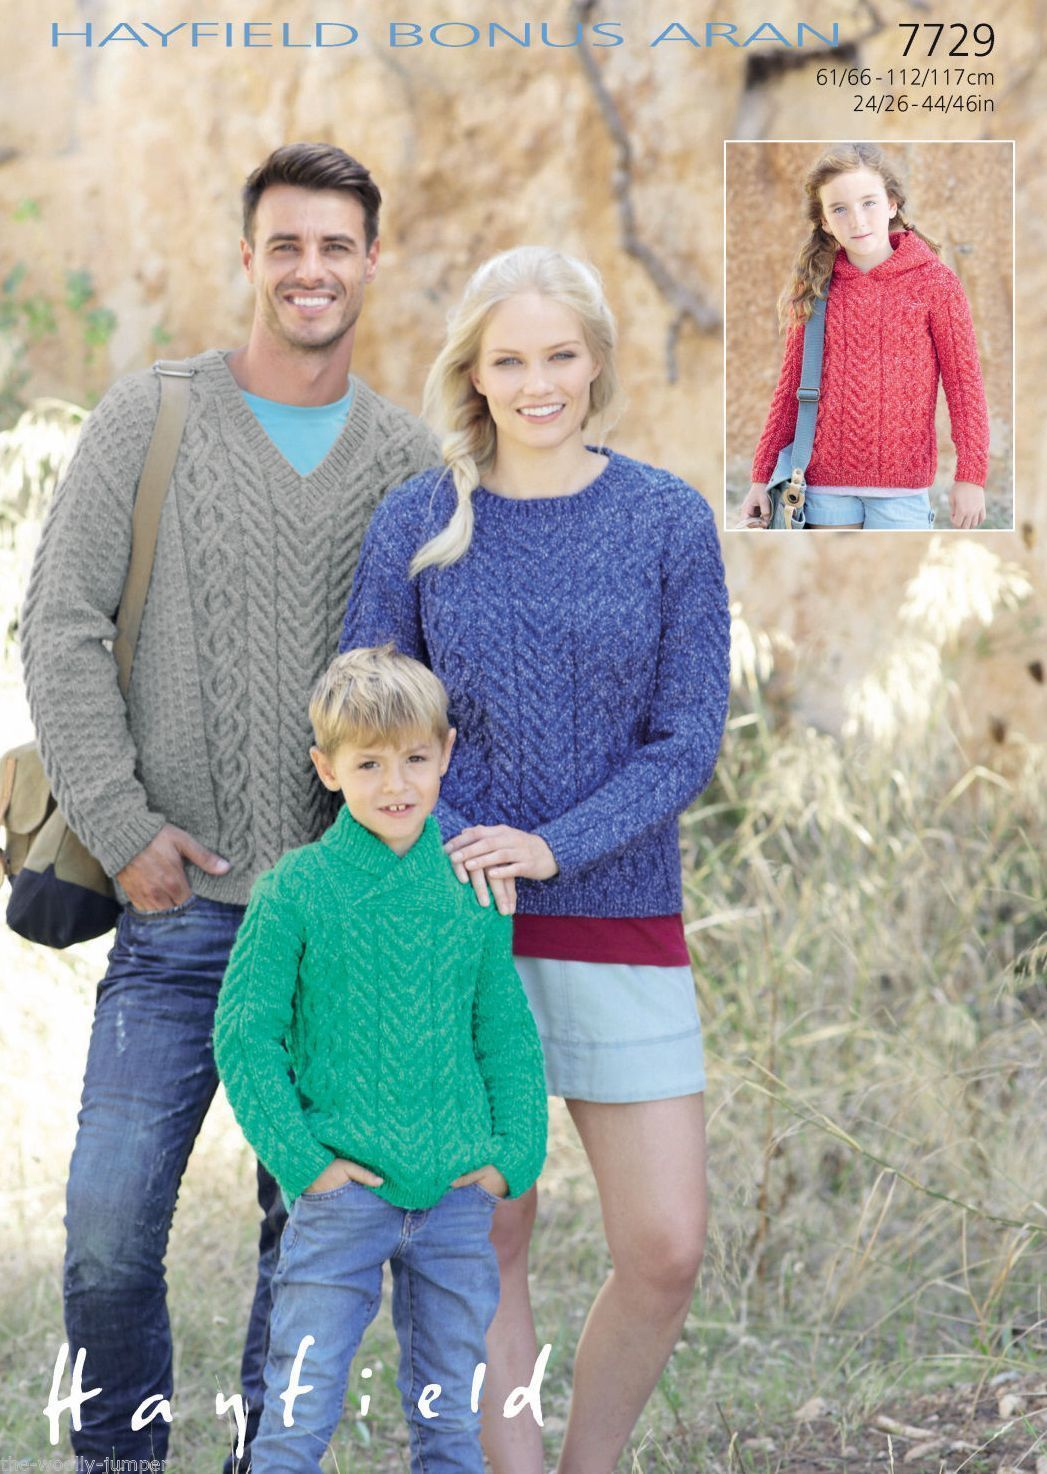 Aran Jumper Knitting Patterns 7729 Hayfield Bonus Aran Sweater Knitting Pattern To Fit Chest 24 To 46